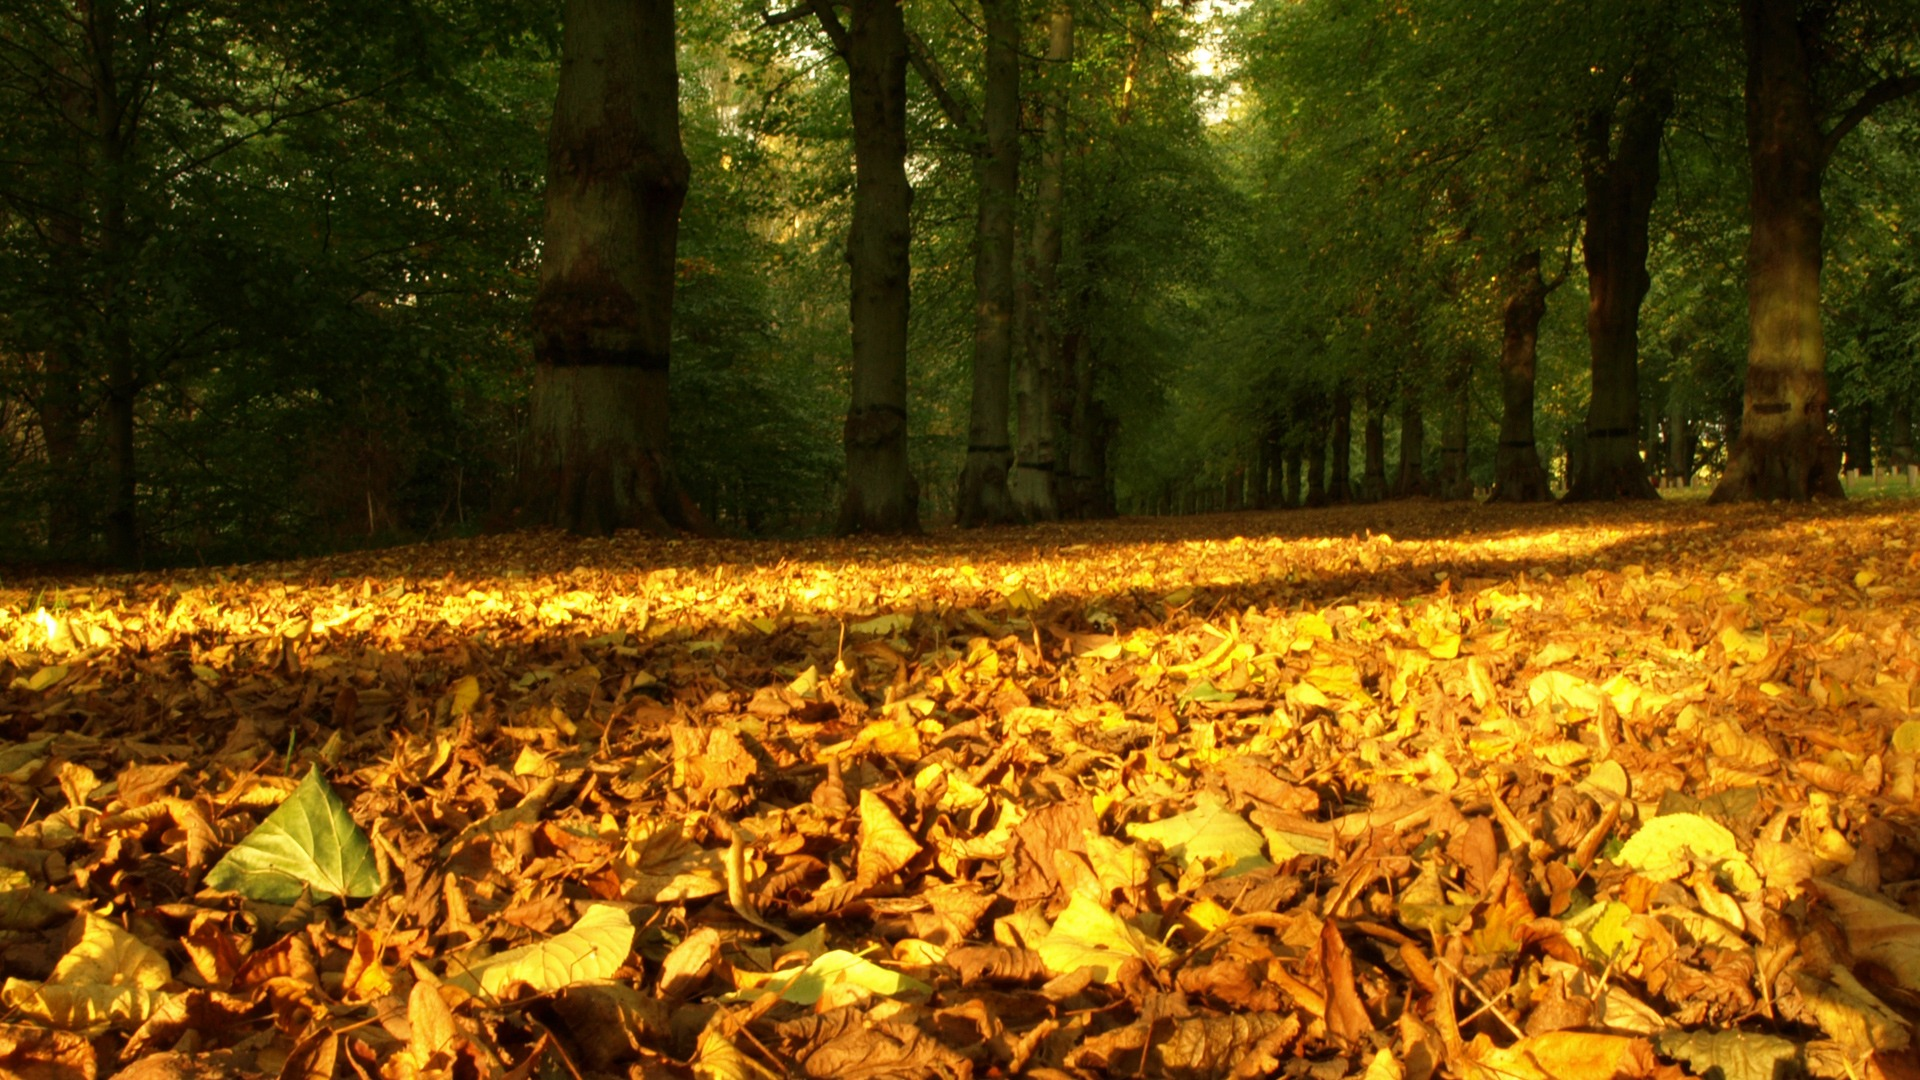 Autumn Leaves Carpet Wallpaper Autumn Nature Wallpapers in